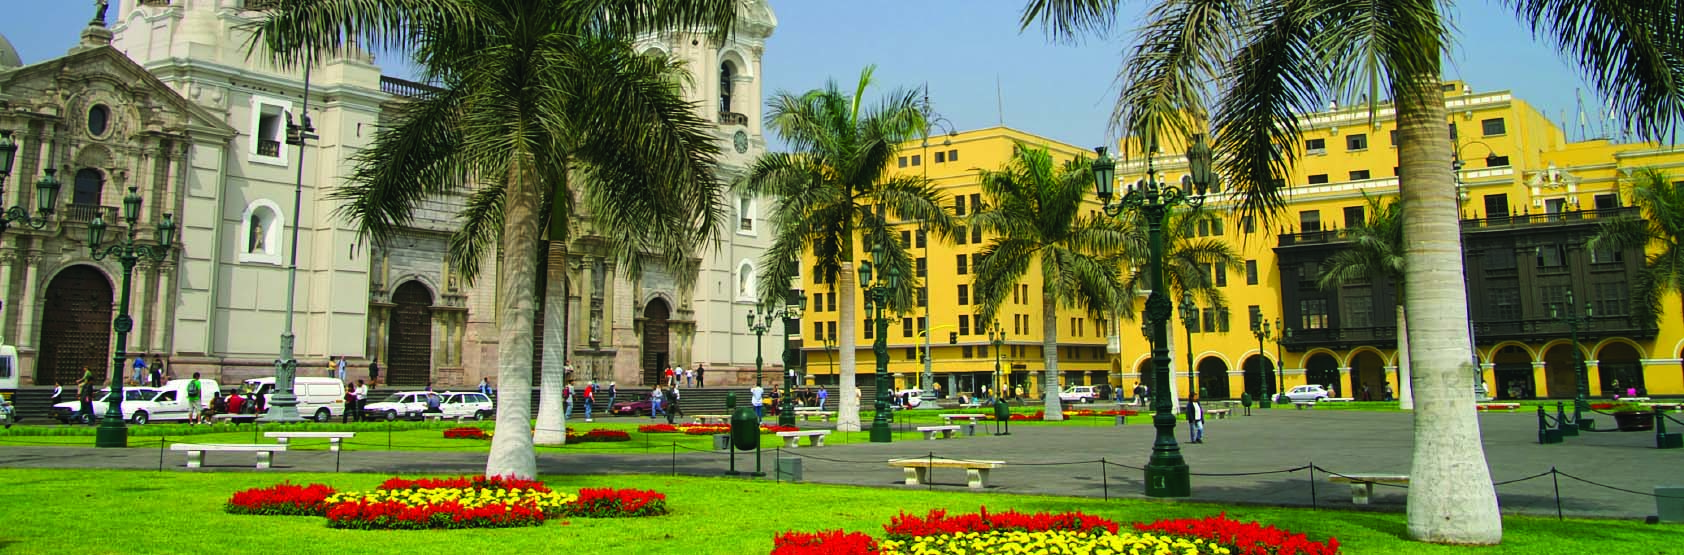 A breathtaking cathedral in a town square surrounded by an aboundance of palm treees and native red flowers